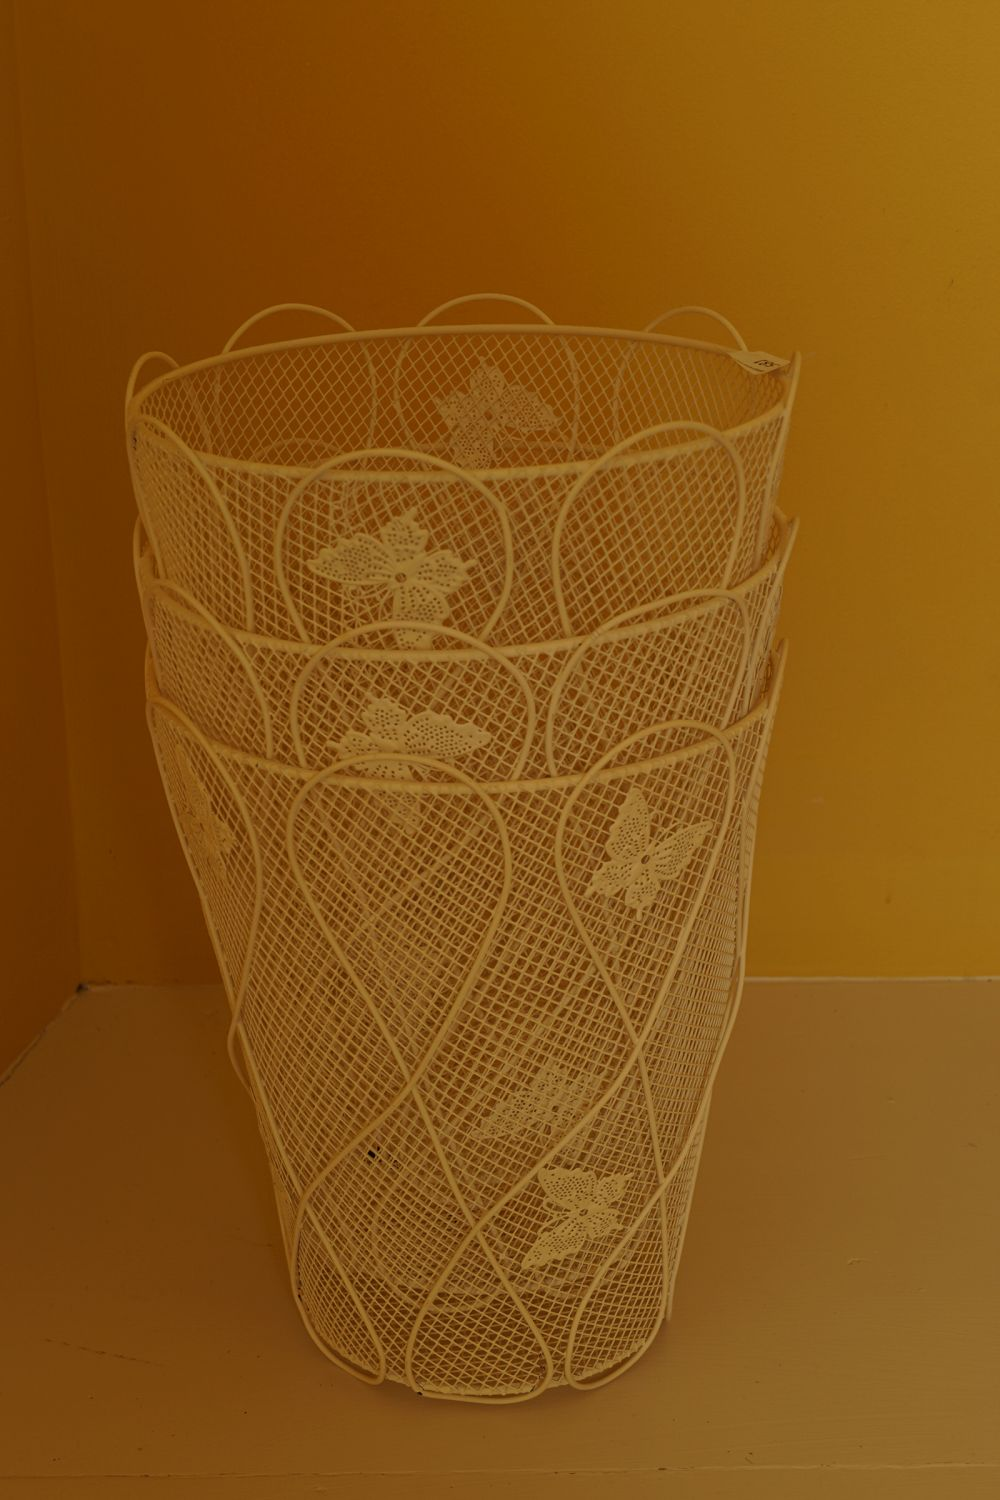 LOT OF 3 WIRE WORK PAPER BASKETS